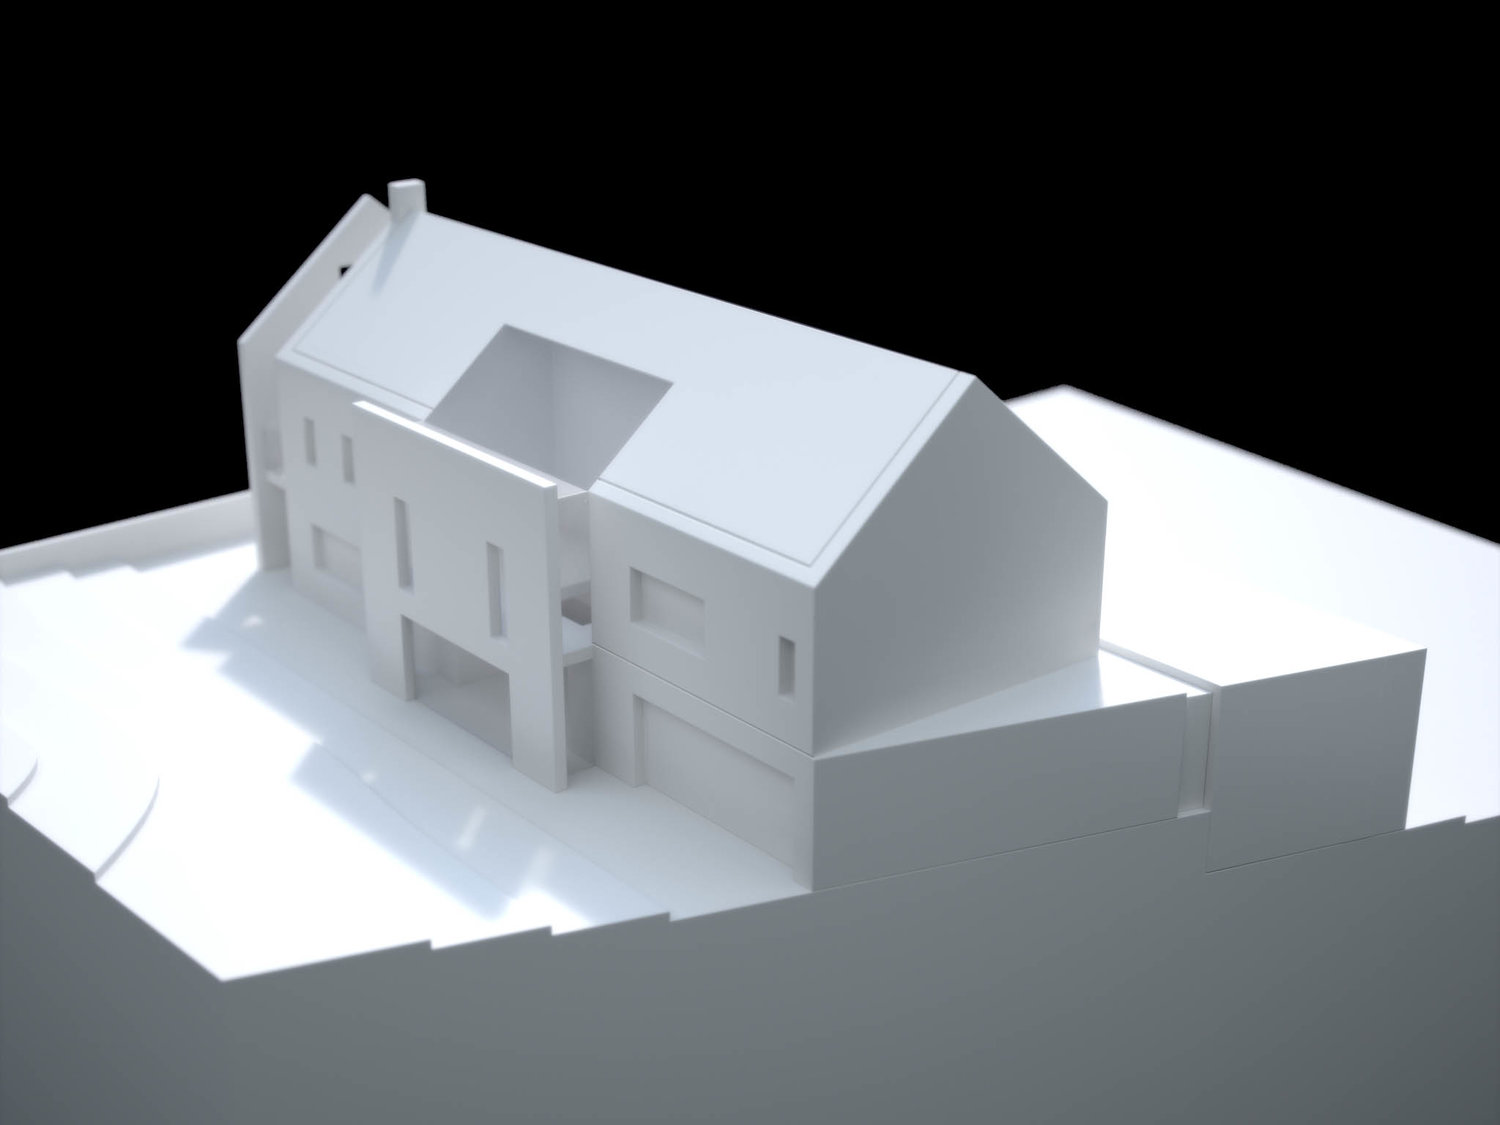 Private House Physical Model 5